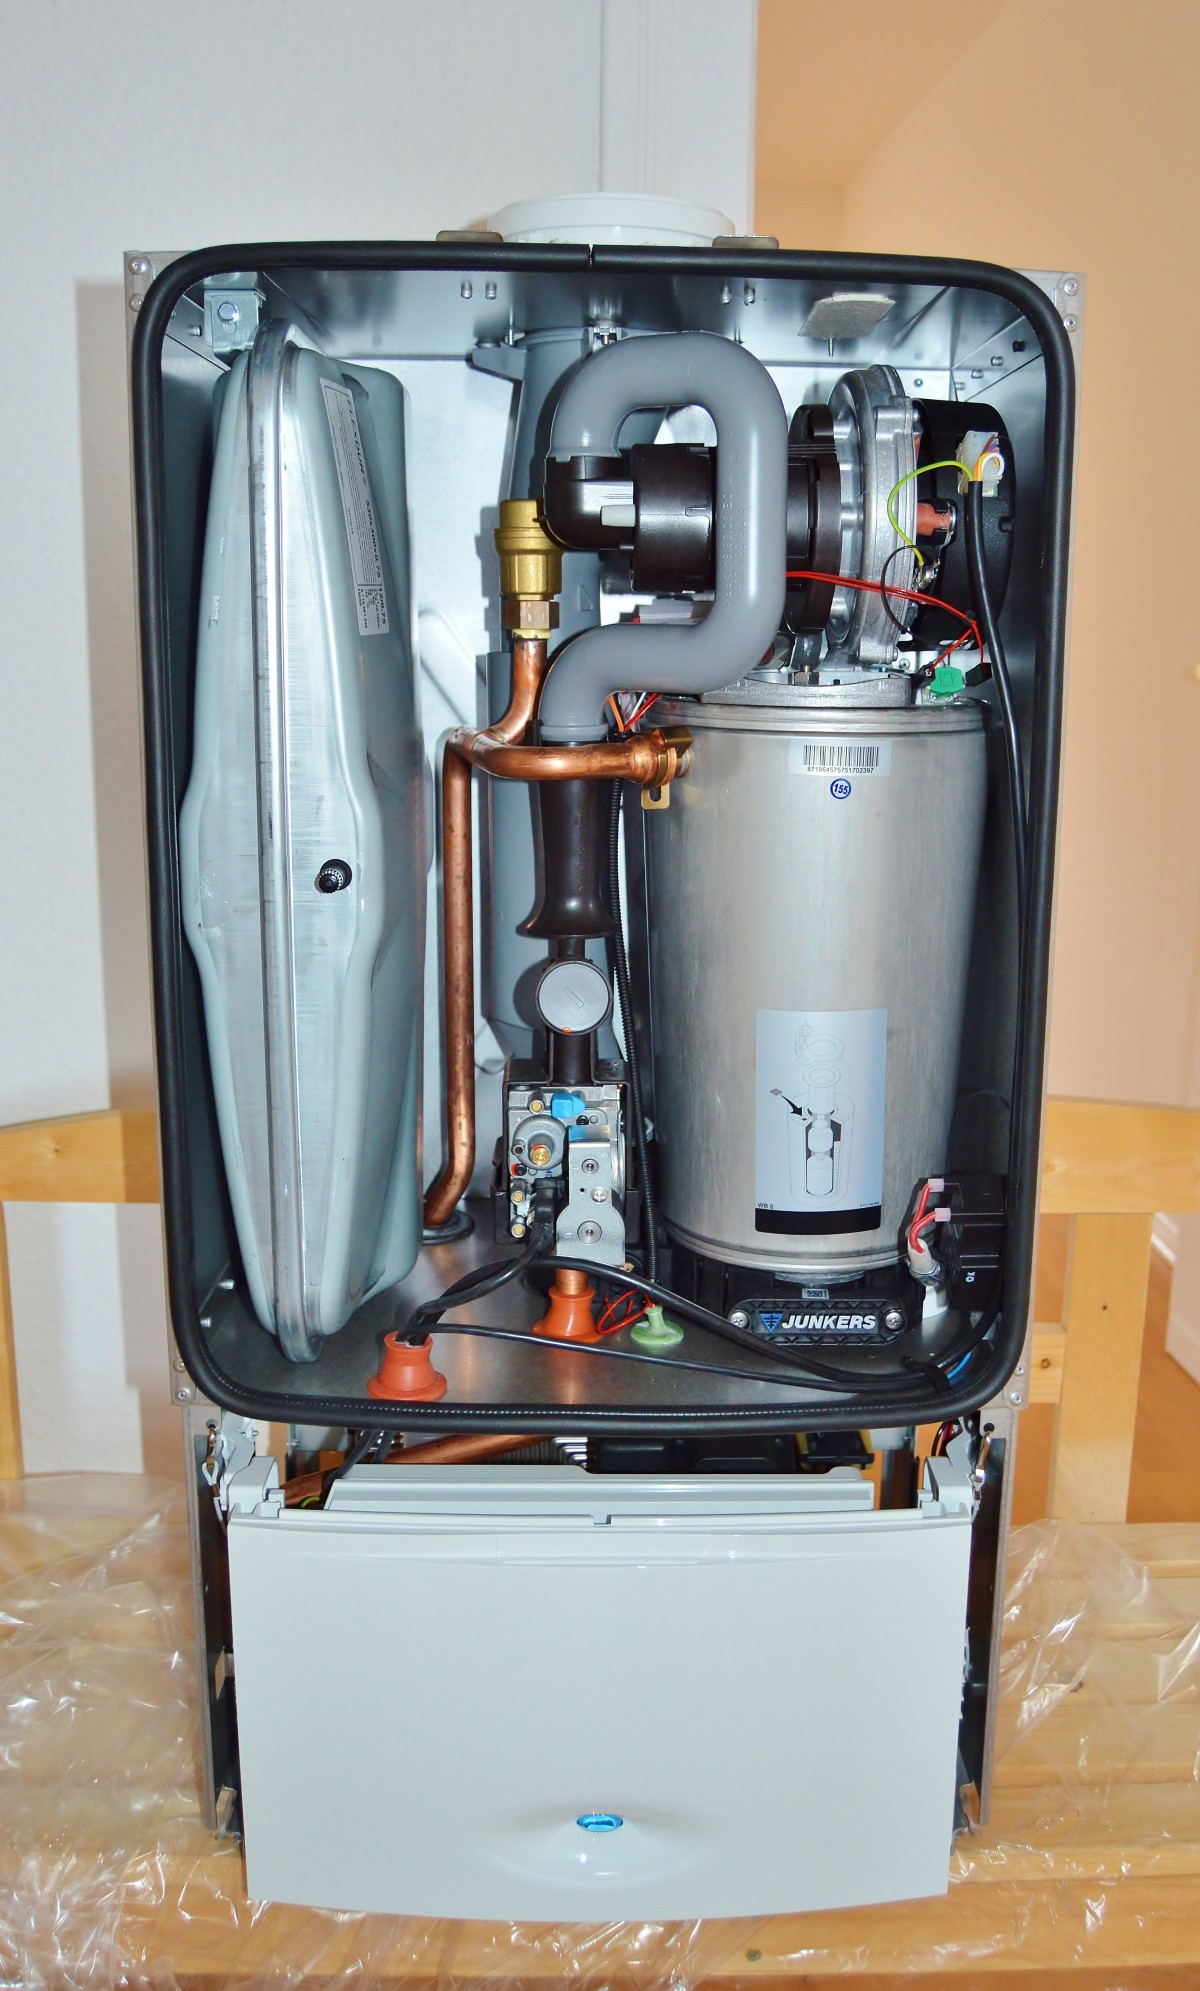 What type of boiler do I need?